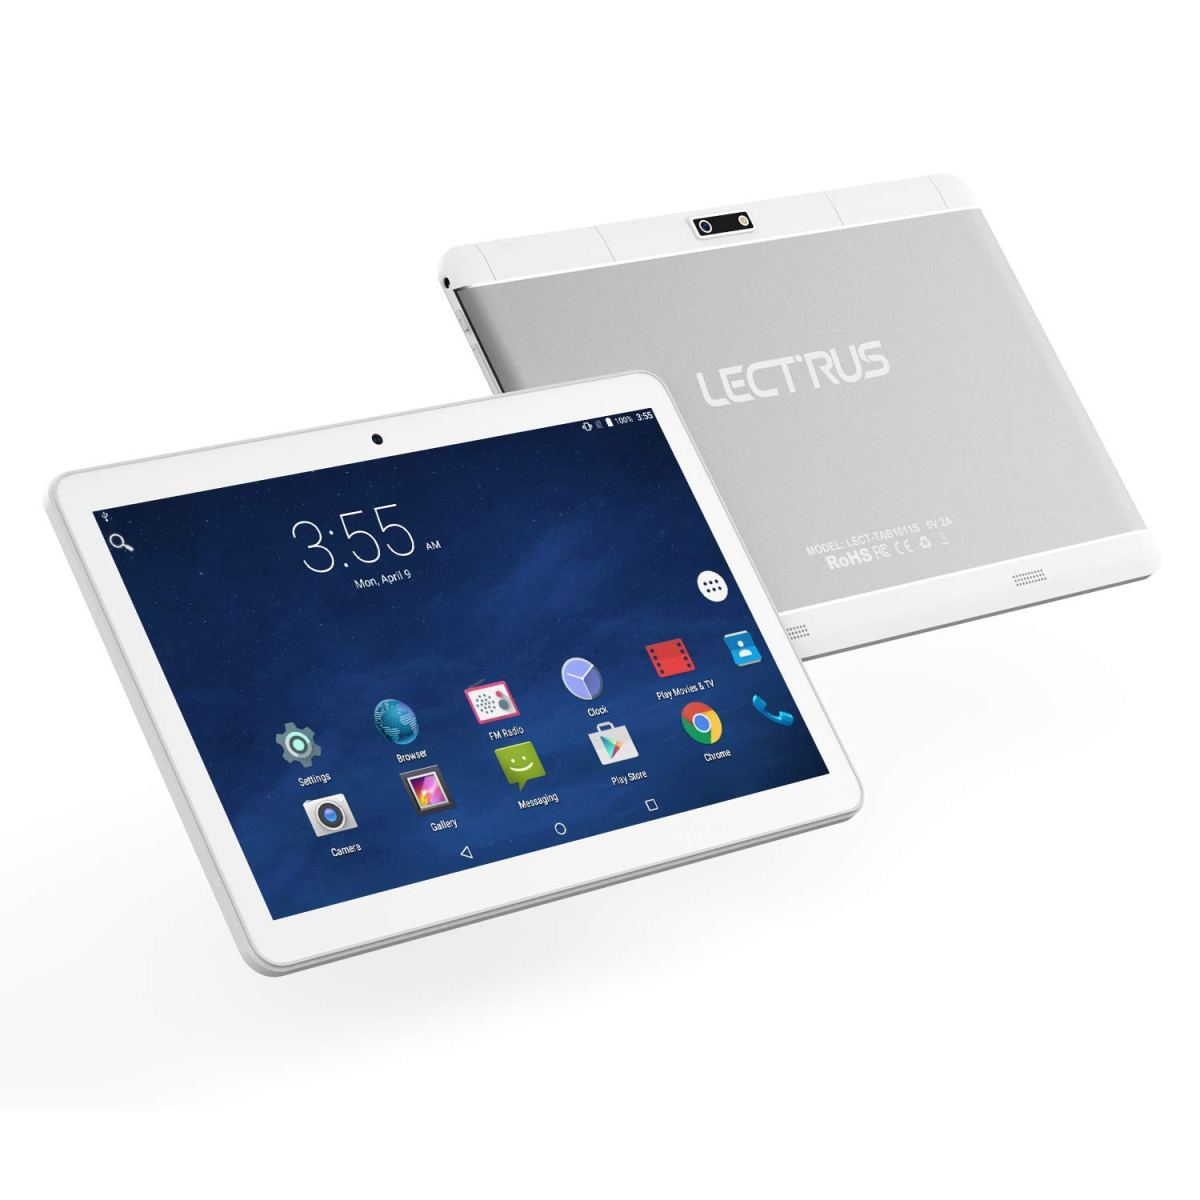 Lectrus Android Phone Tablet 10-inch 3G Phablet